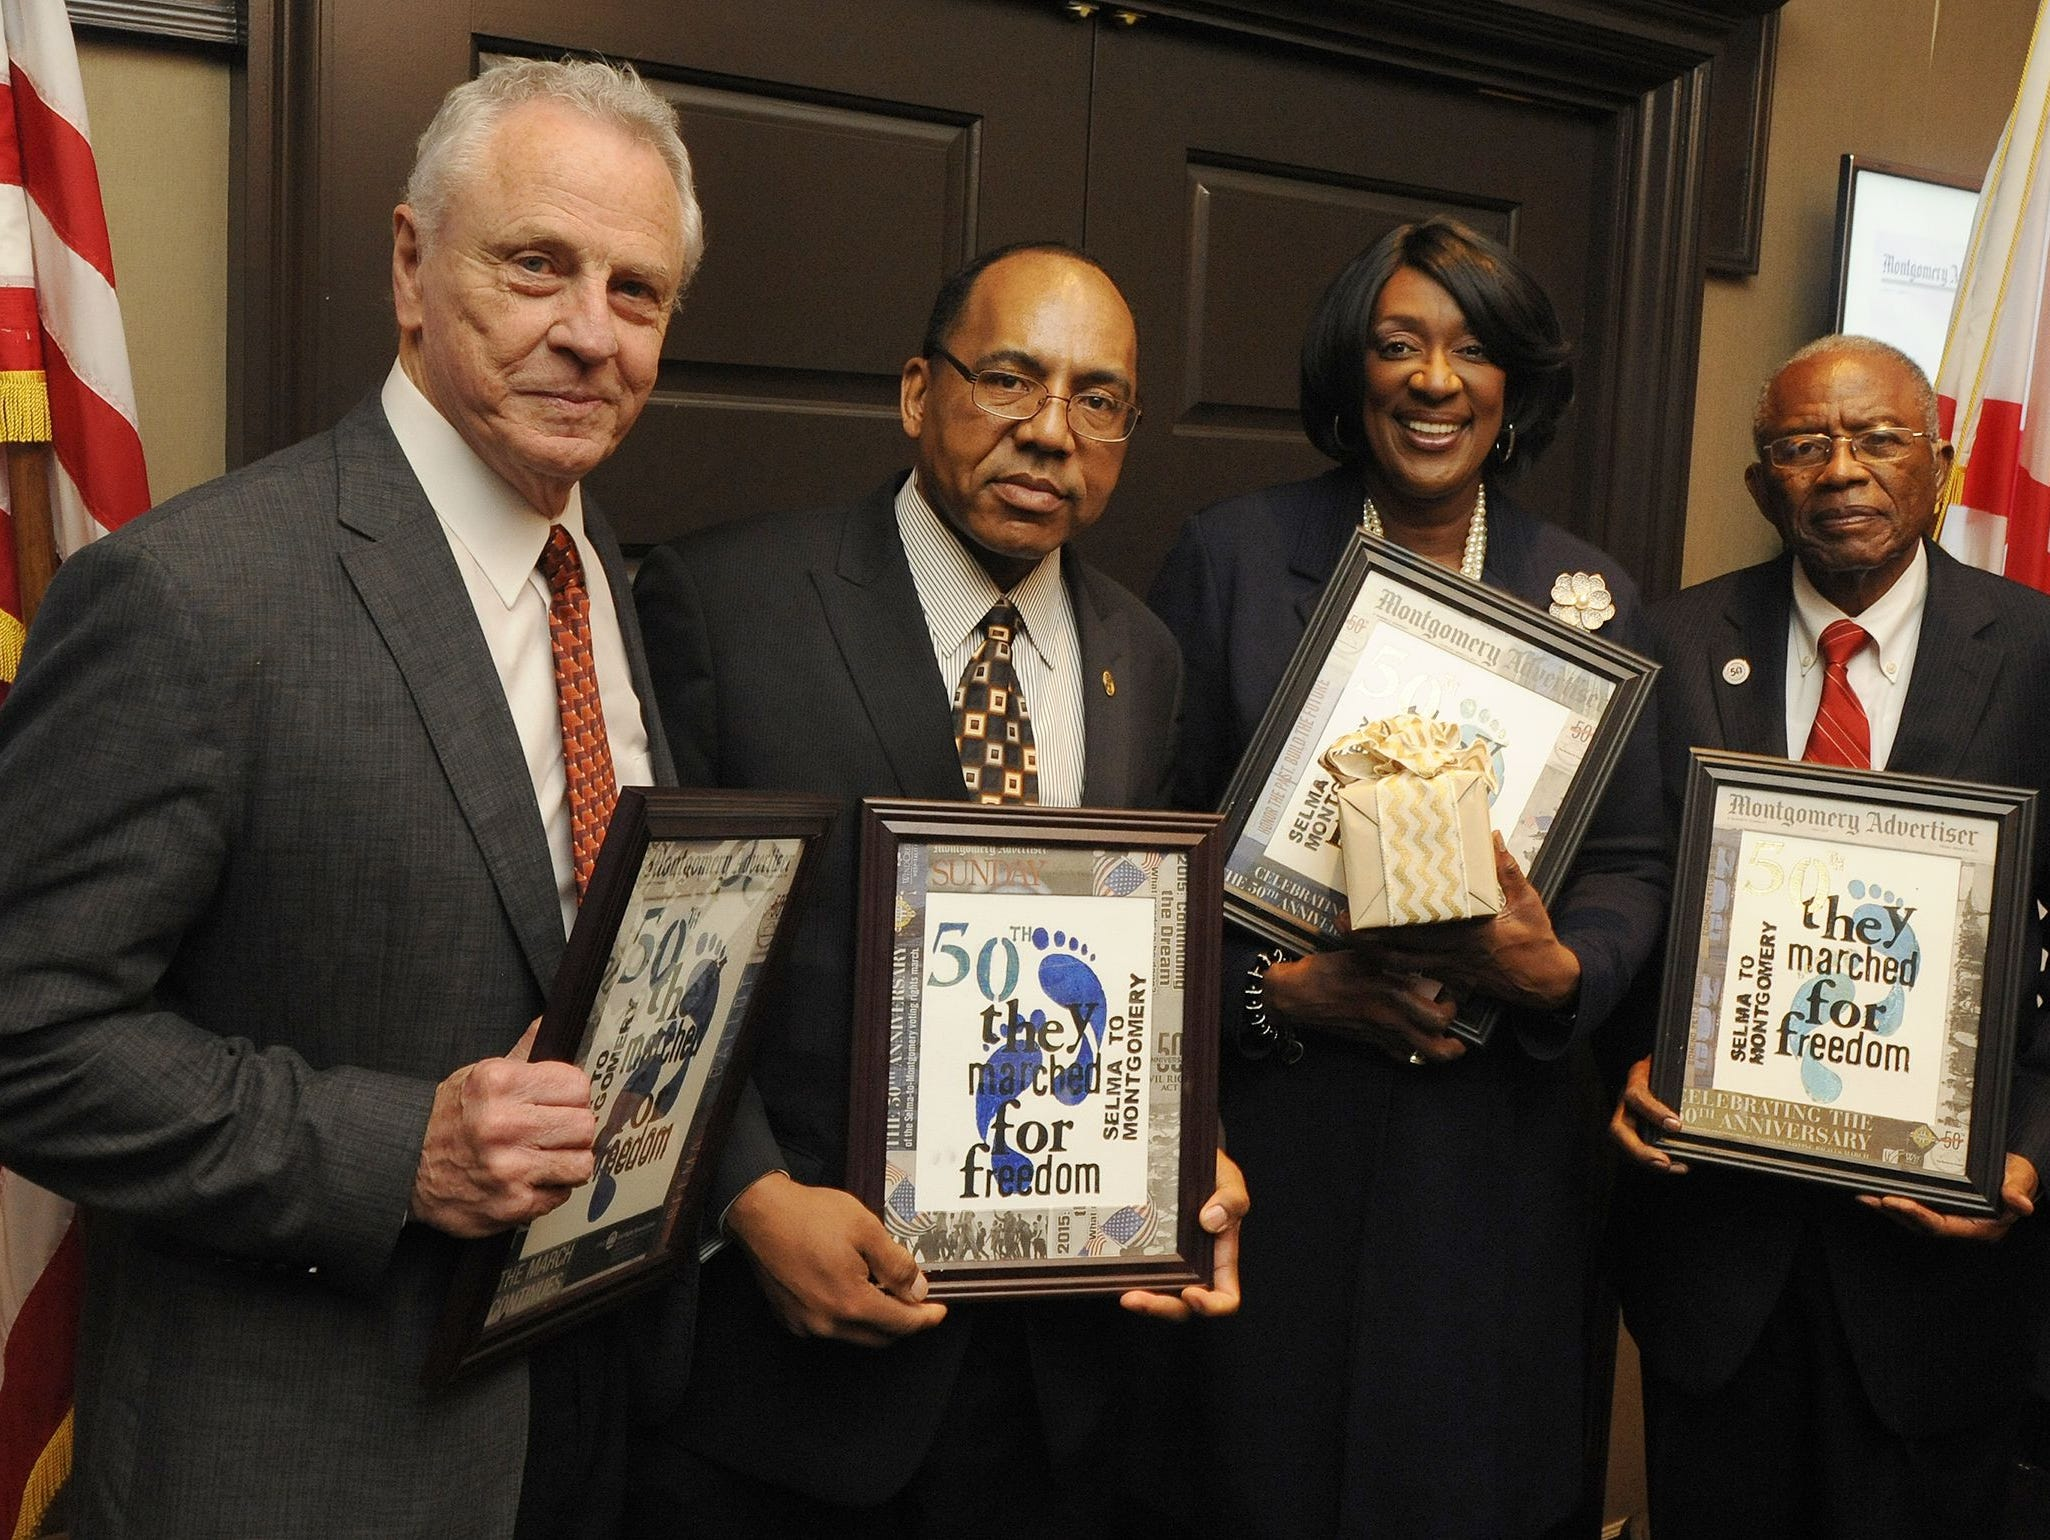 Speakers, Morris Dees, Vann Newkirk, Gwendolyn Boyd and Fred Gray pose following the Montgomery Advertiser 50th Anniversary of the Selma to Montgomery March Celebration at the Capitol City Club in Montgomery, Ala. on Tuesday March 10, 2015.